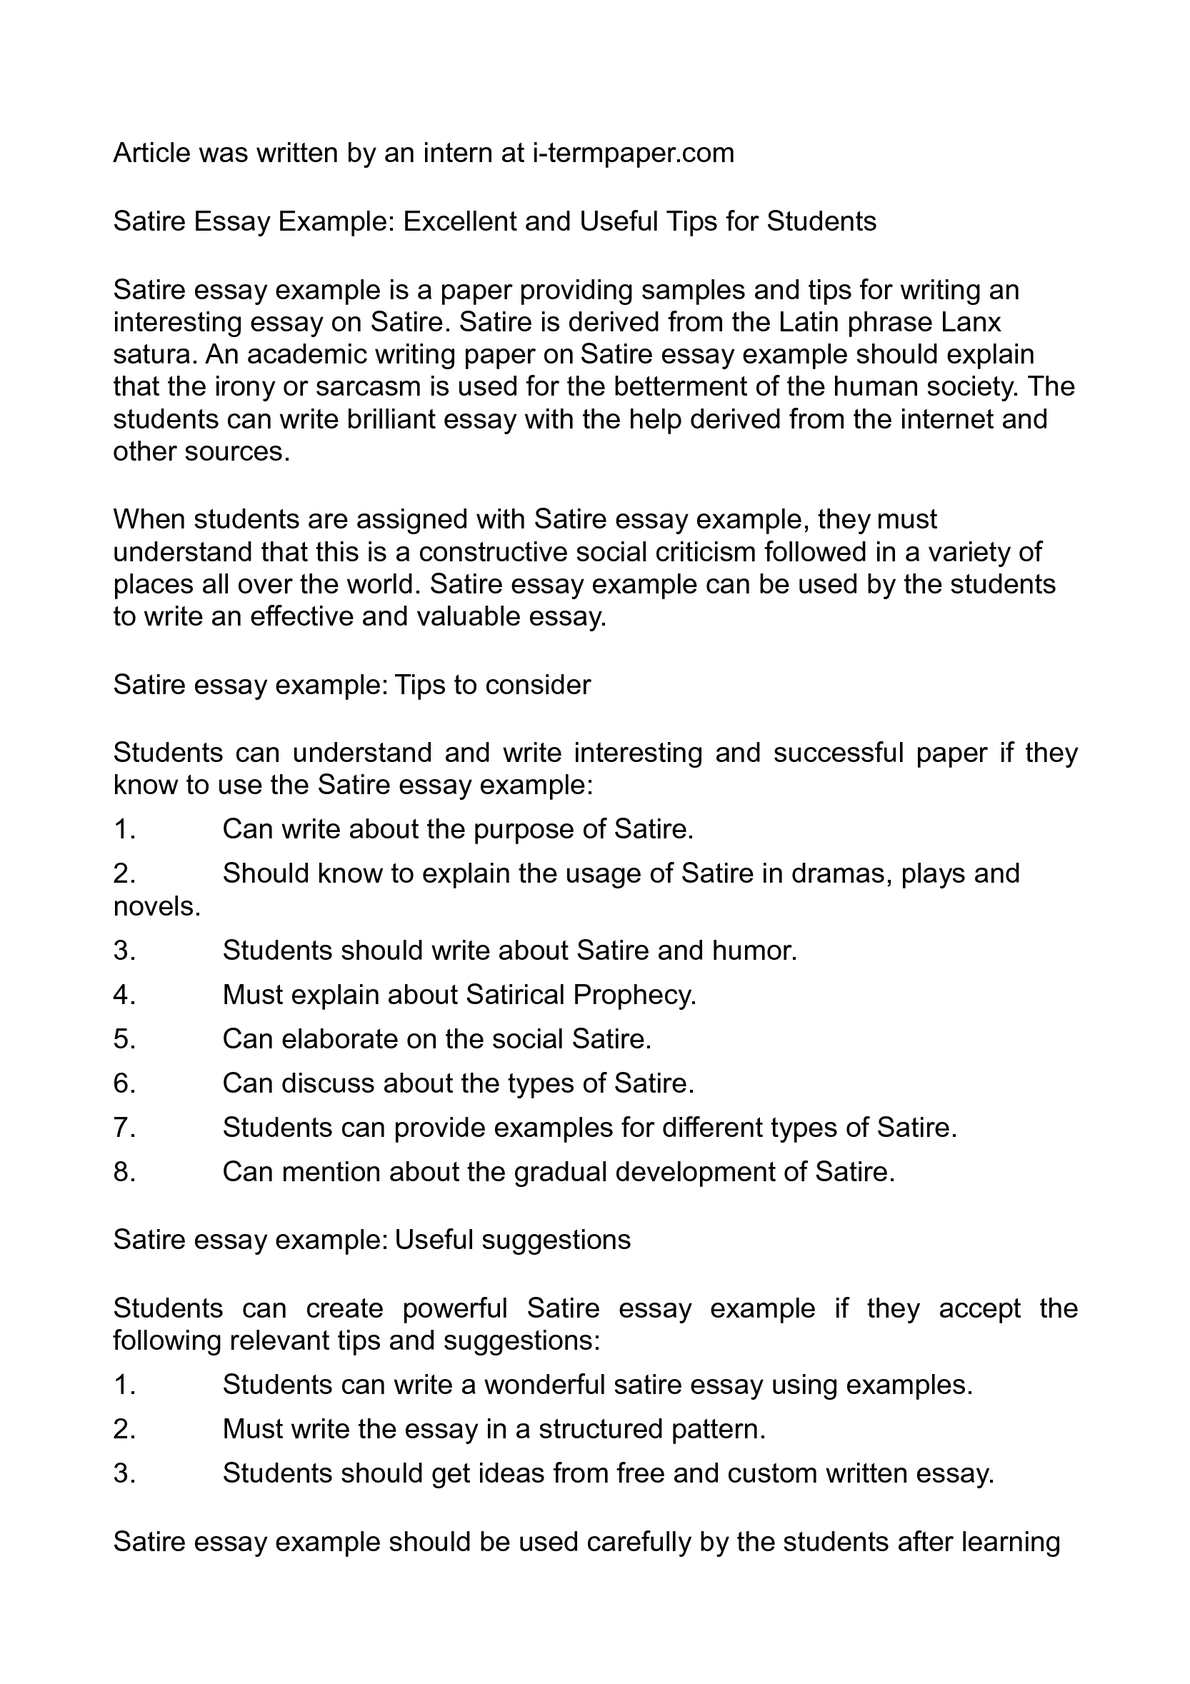 satirical essay topics satirical essay topics gxart satirical satirical essay topics gxart orgexamples of satire essay topics topic suggestions statement examples of satire